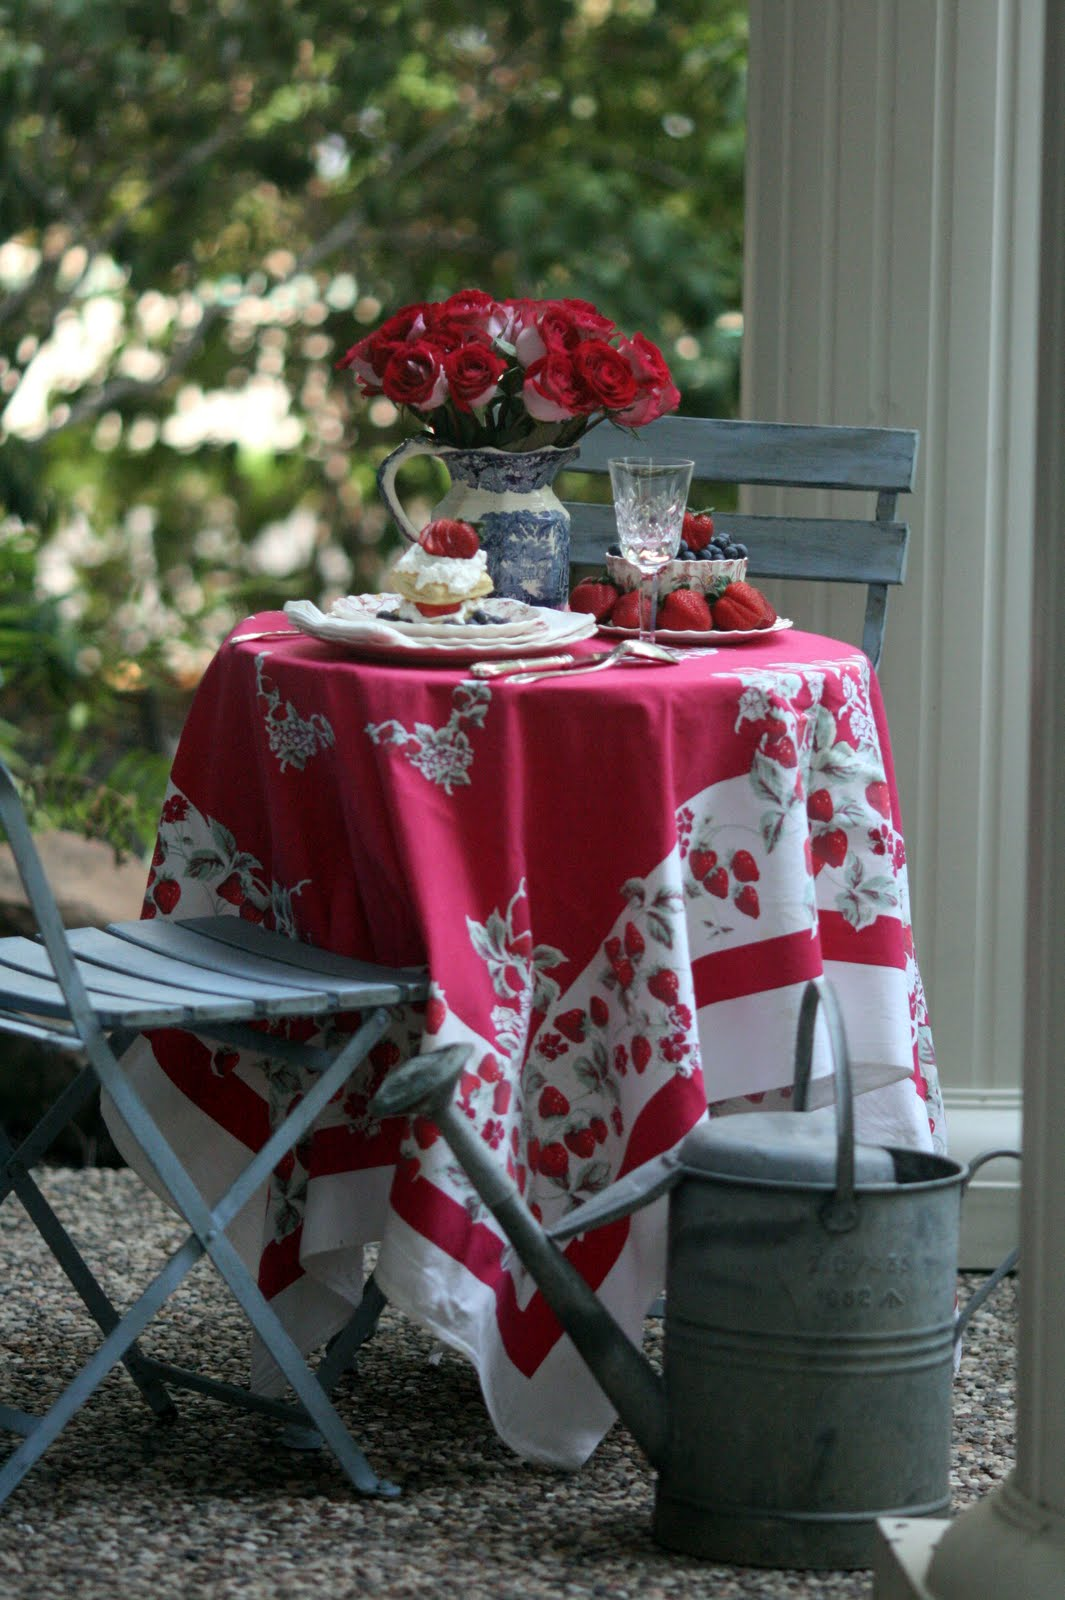 Strawberry Napoleons, vintage tablecloth and watering can